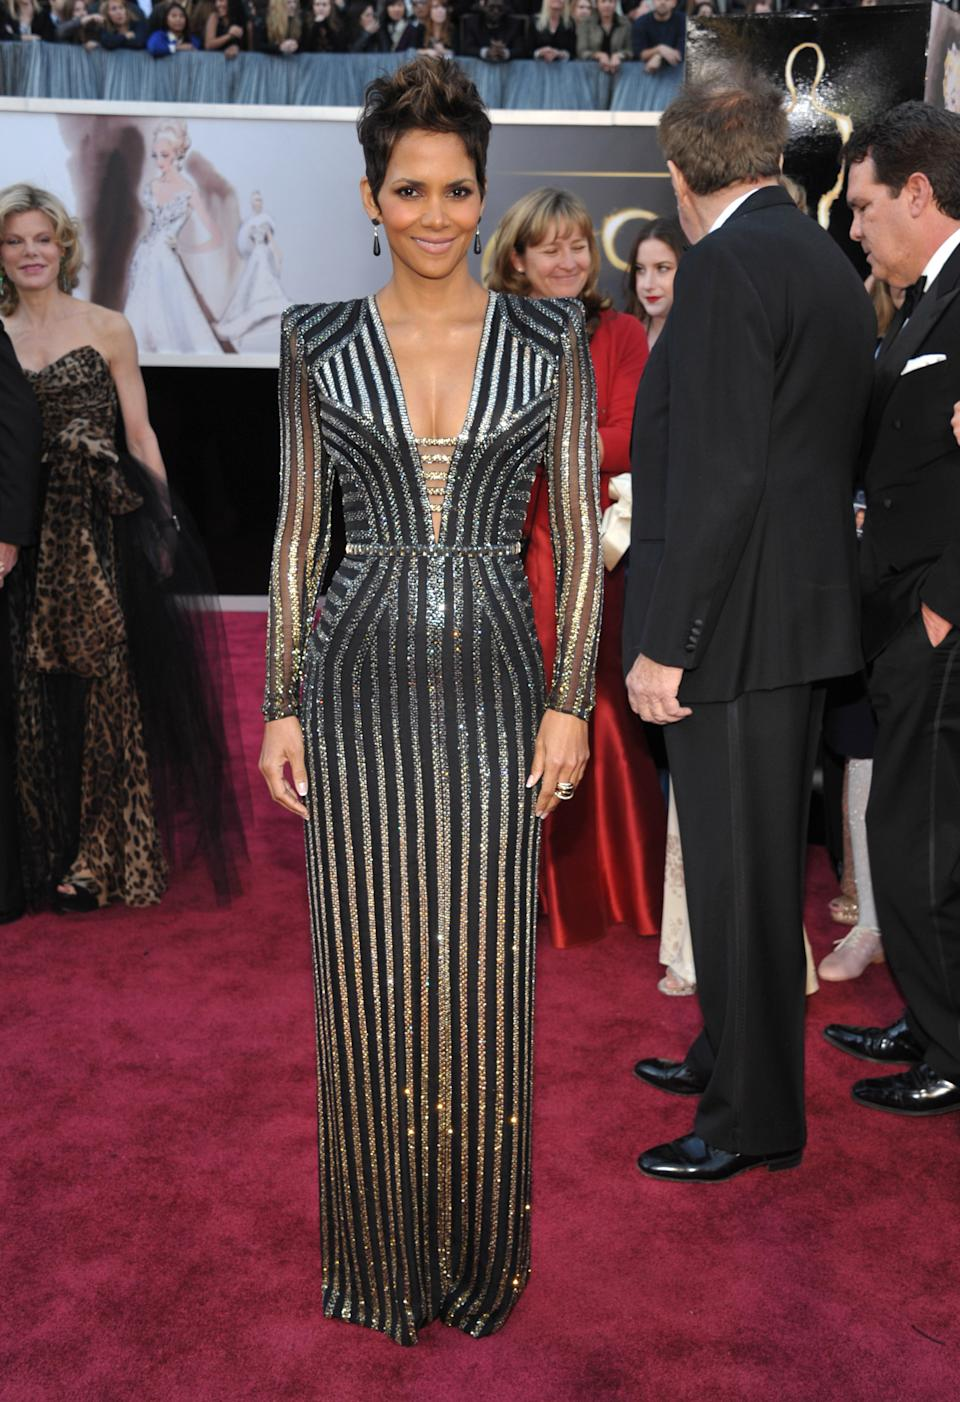 Actress Halle Berry arrives at the Oscars at the Dolby Theatre on Sunday Feb. 24, 2013, in Los Angeles. (Photo by John Shearer/Invision/AP)